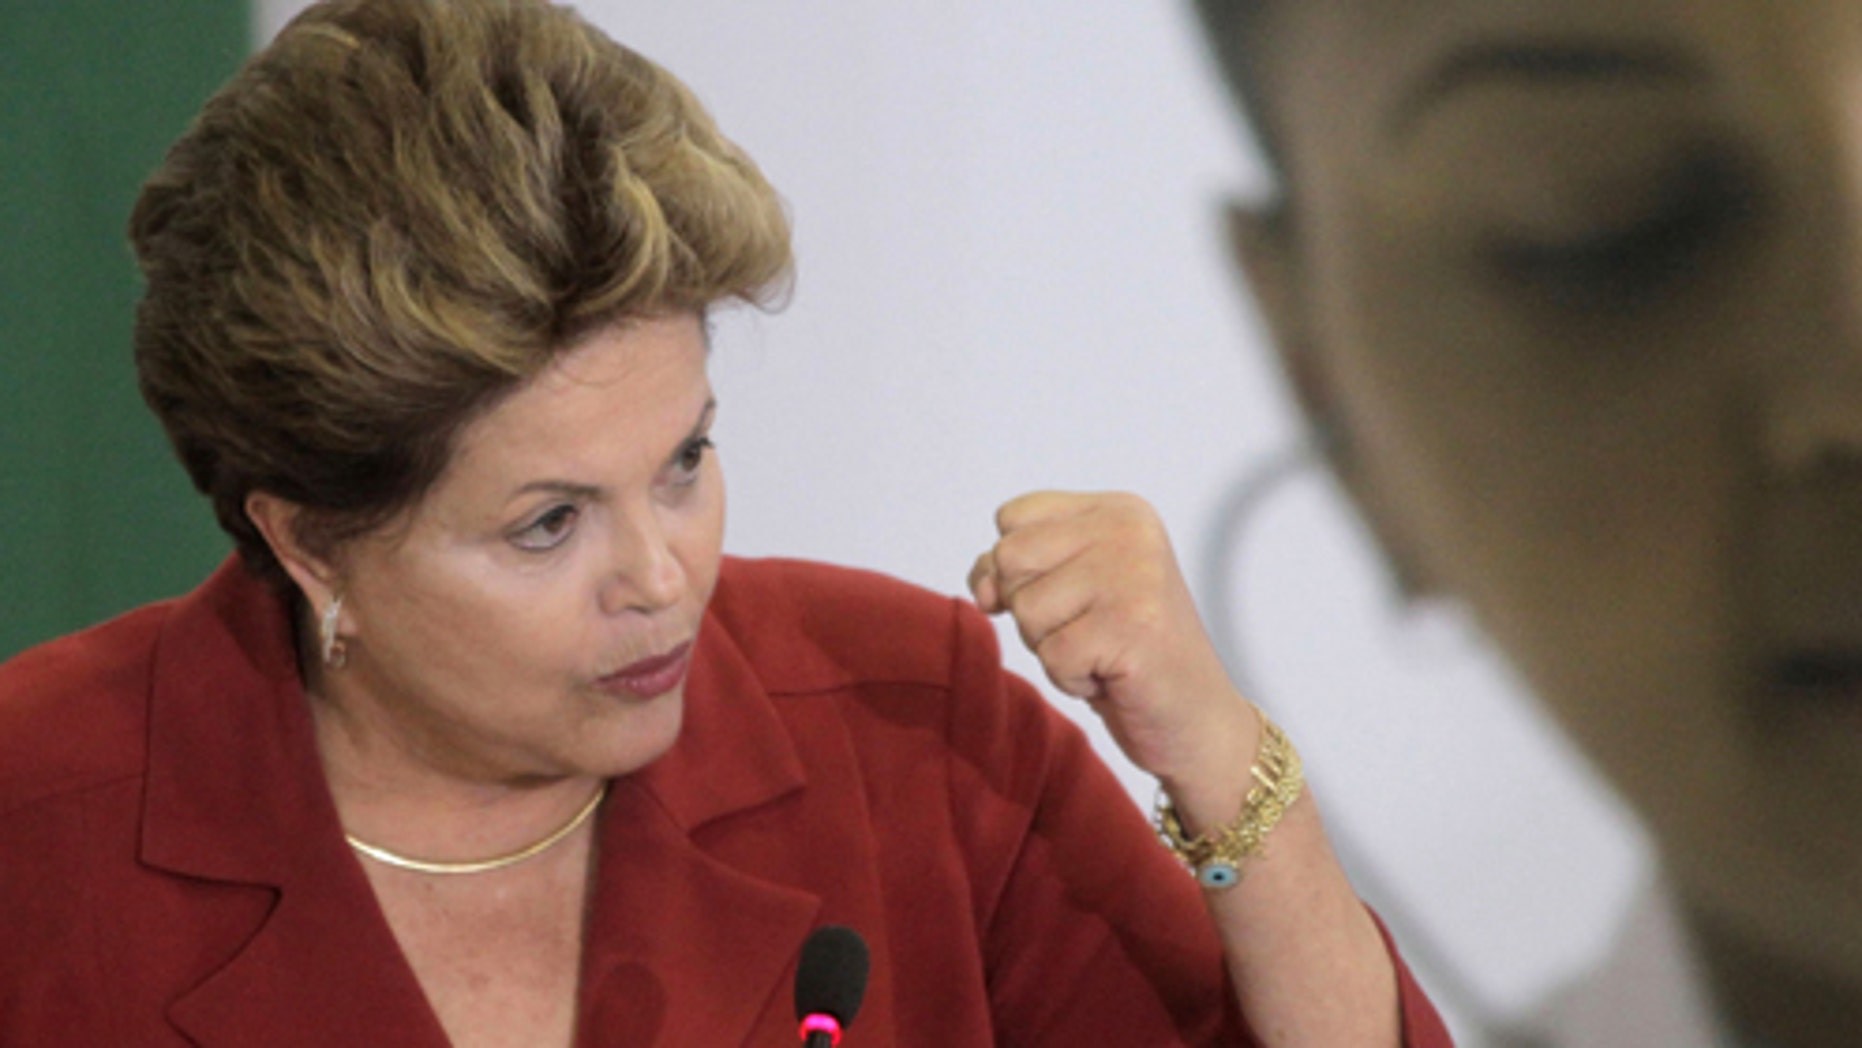 Brazil's President Dilma Rousseff at the presidential palace in Brasilia, Brazil, Monday, July 8, 2013.